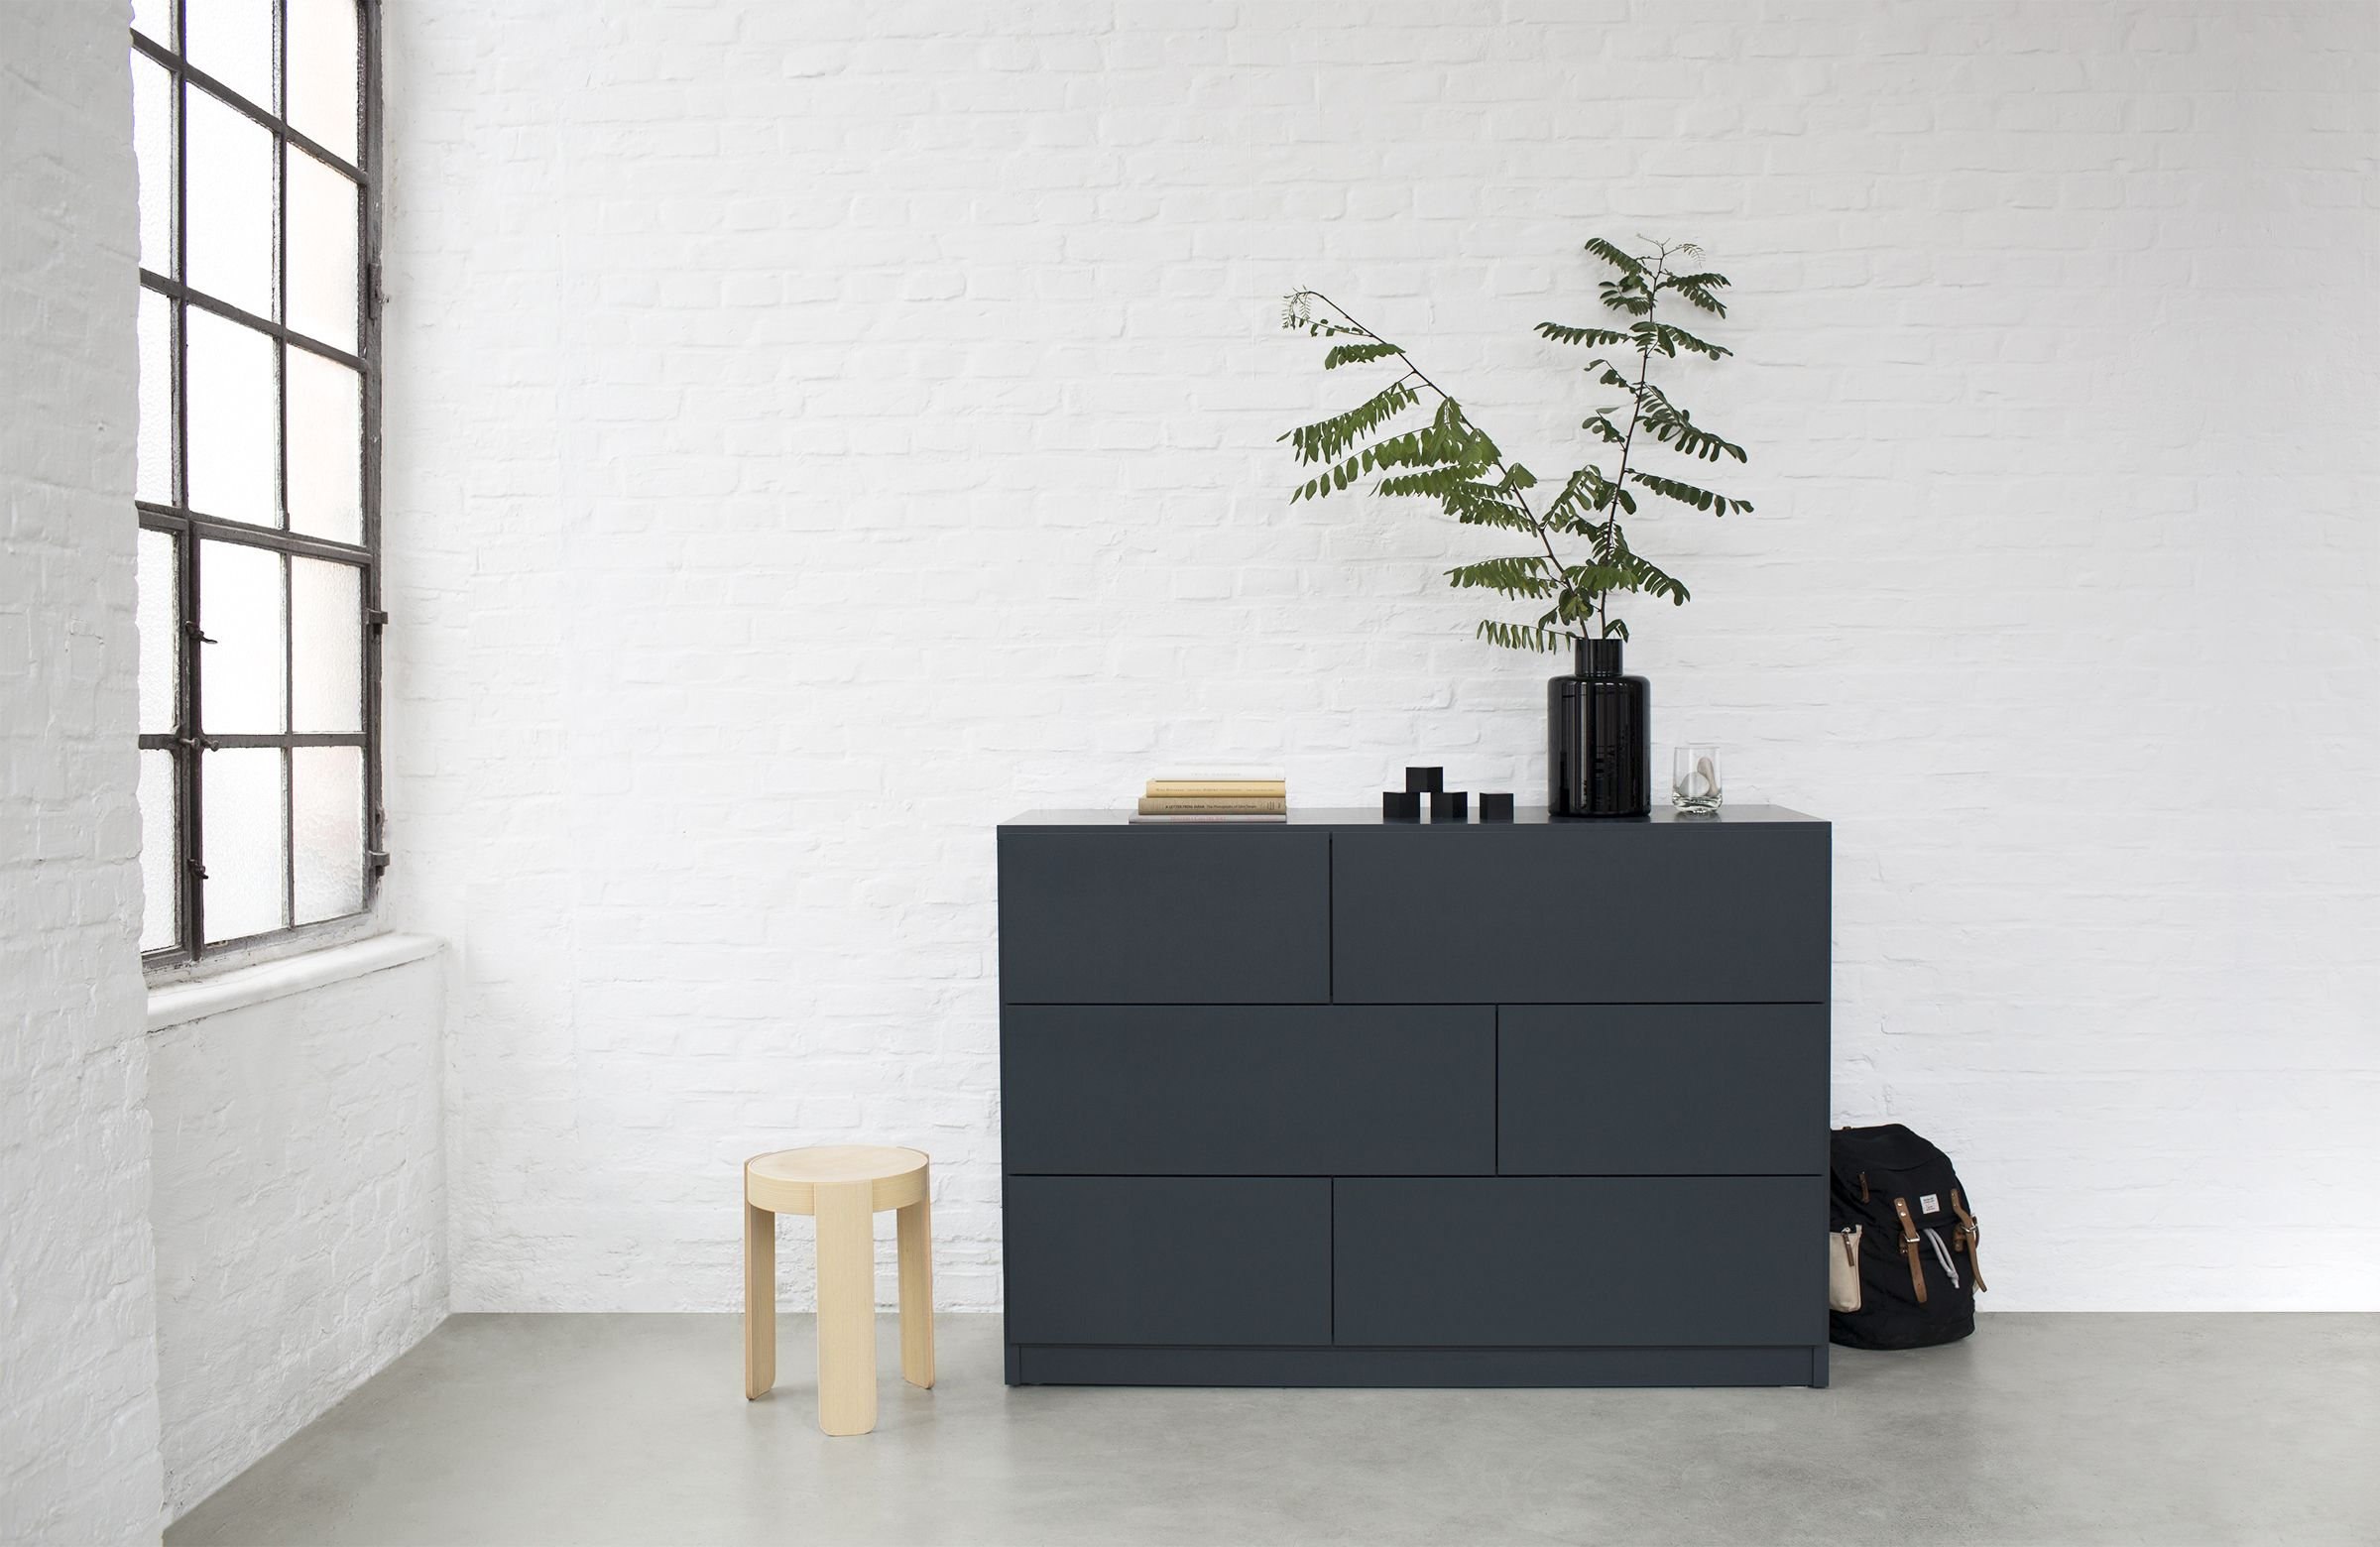 Shape Shifters Modular Furniture By Heather Corcoran Modular  # Giellesse Muebles